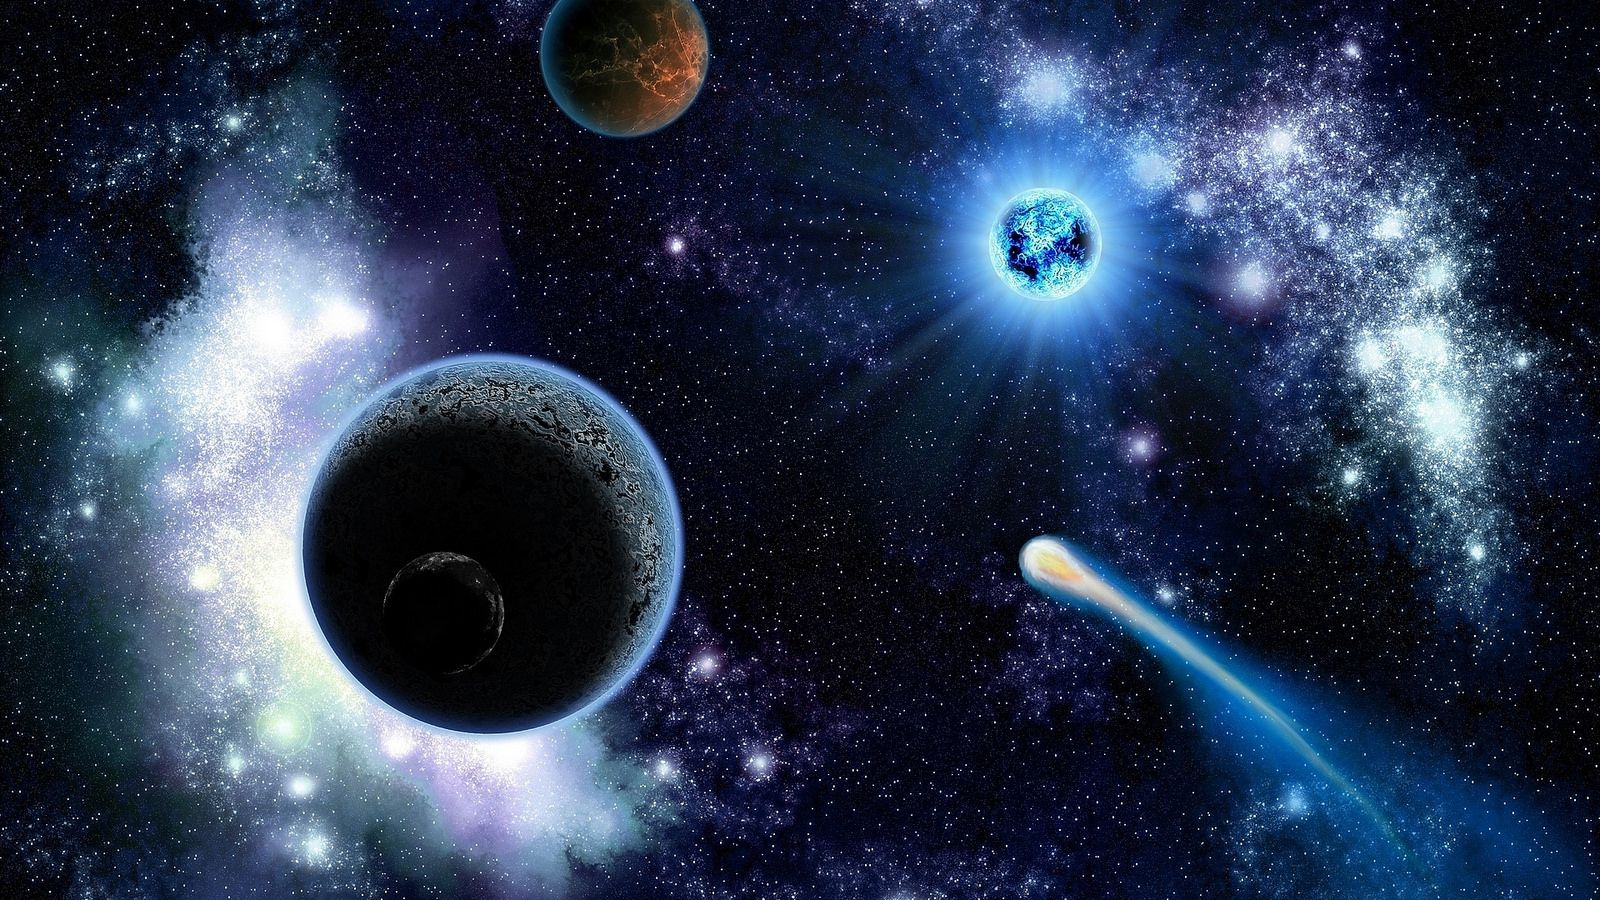 Space Planets Wallpaper Hd Outer Space Wallpaper Wallpaper Space Planets Wallpaper